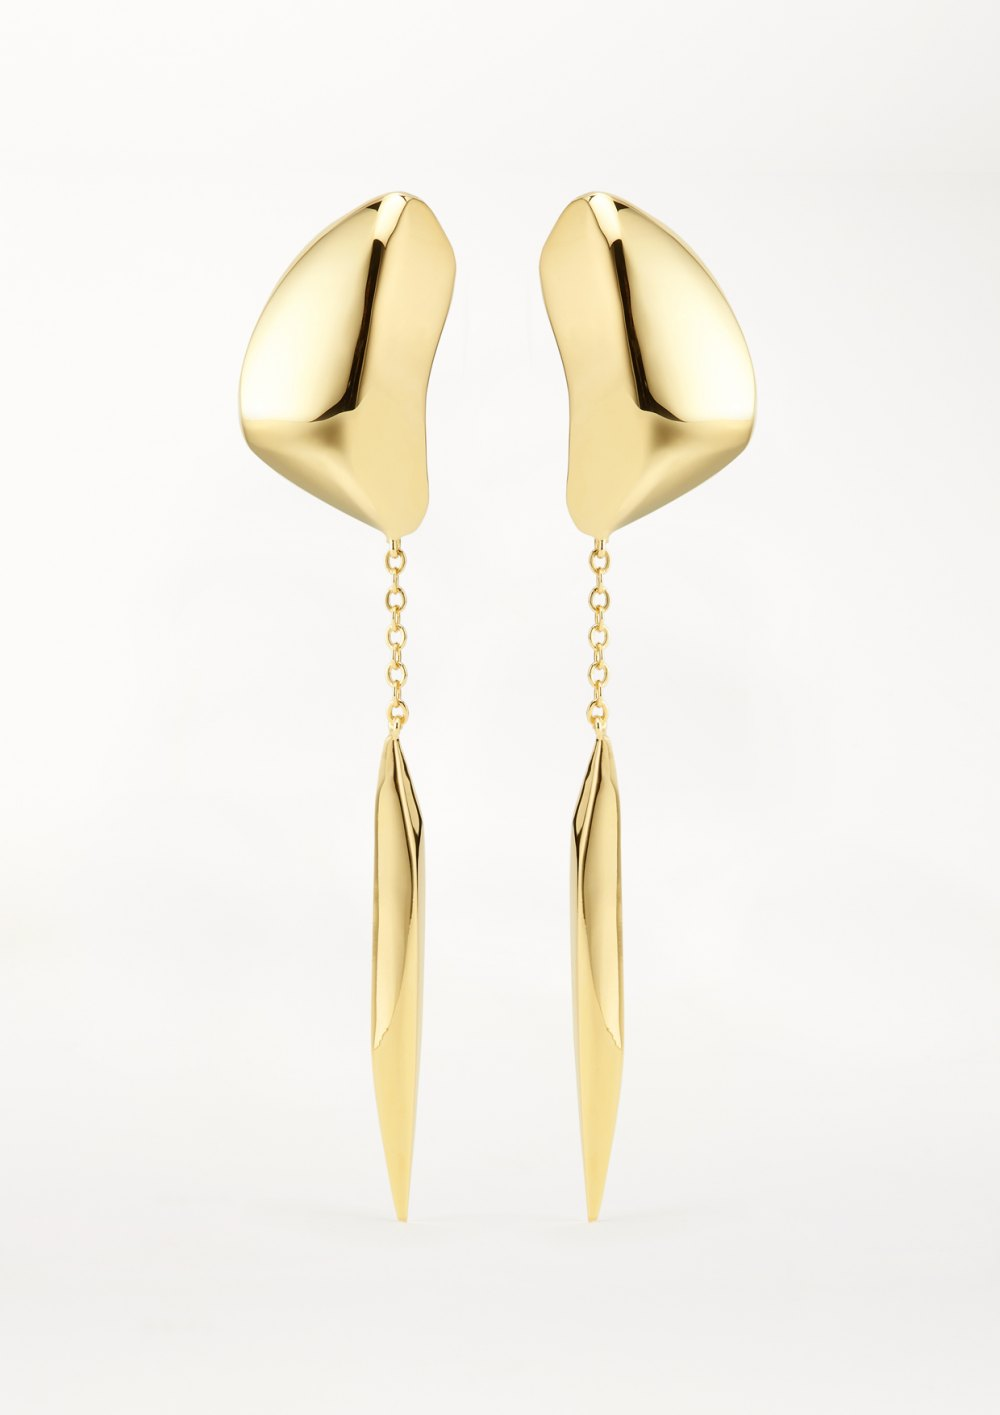 statement earrings Mercury drop Earring  with long chain sculptured pendant in gold washed stone nr 01 xeniabous